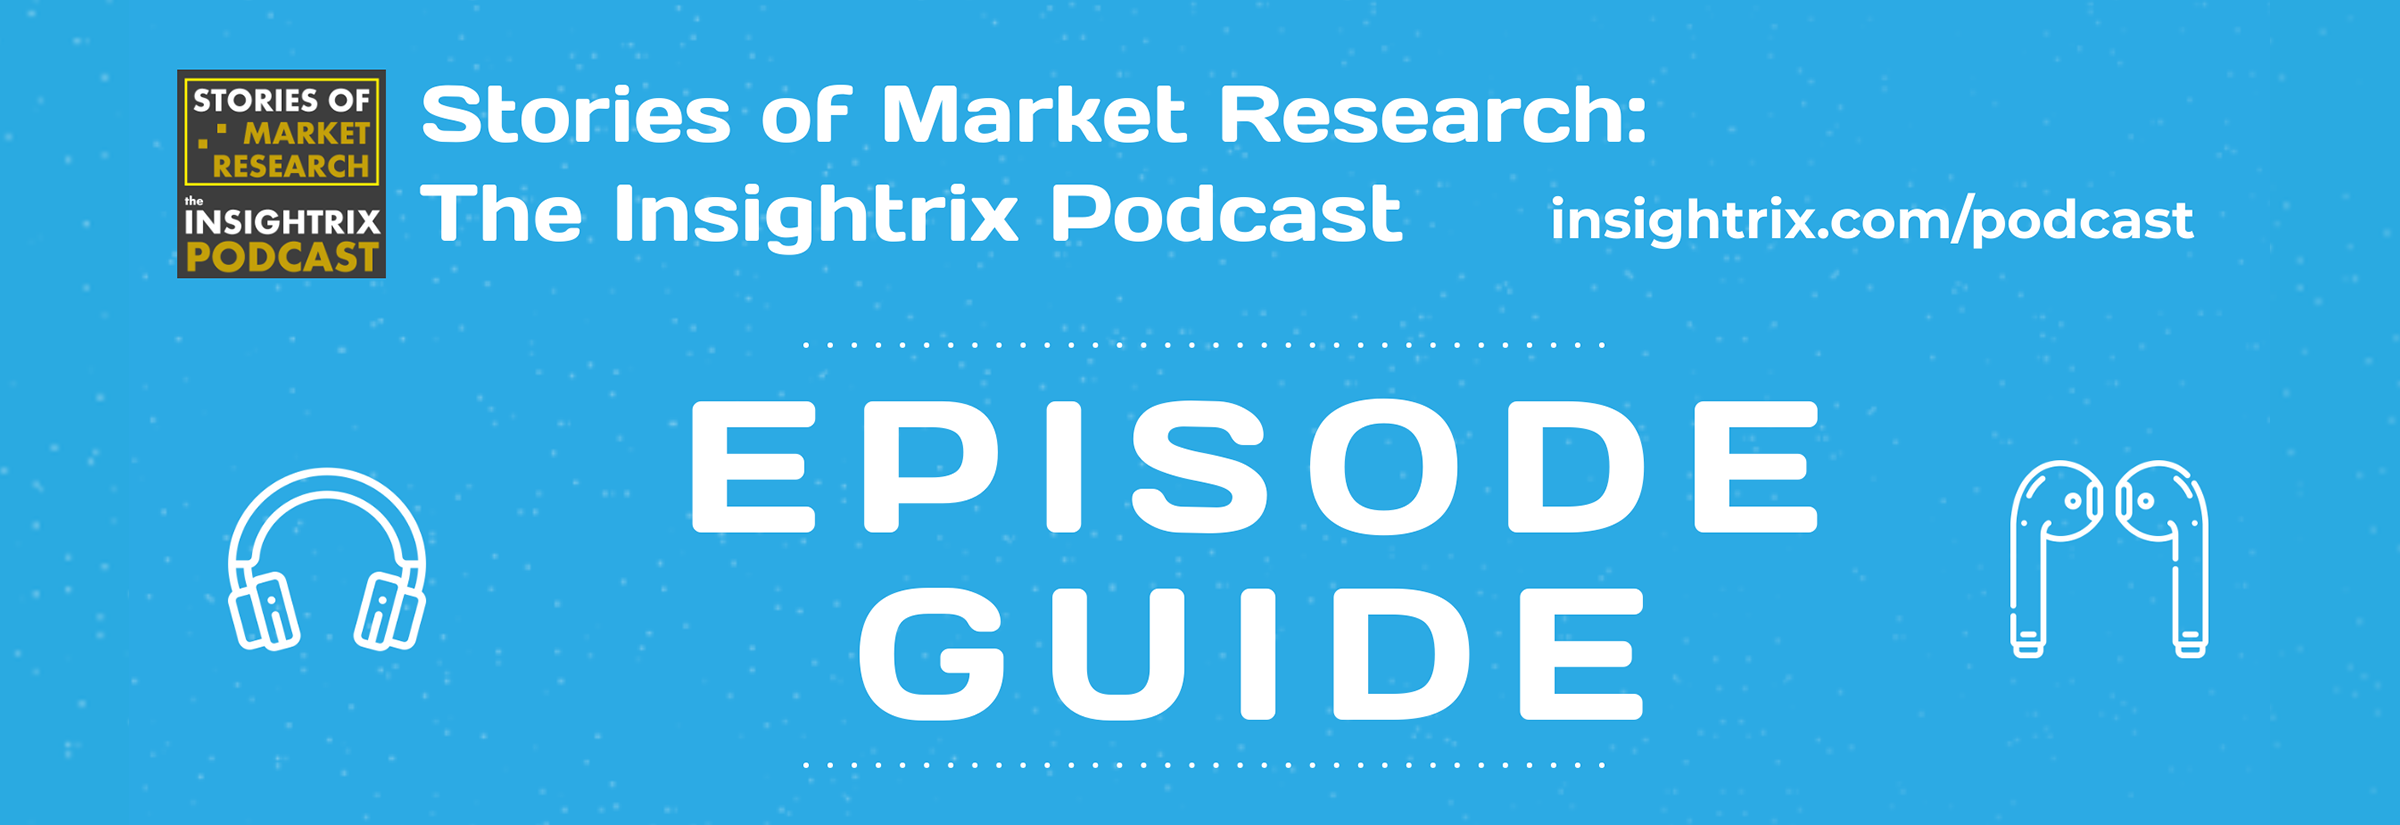 Episode Guide, Insightrix Podcast, Stories of Market Research